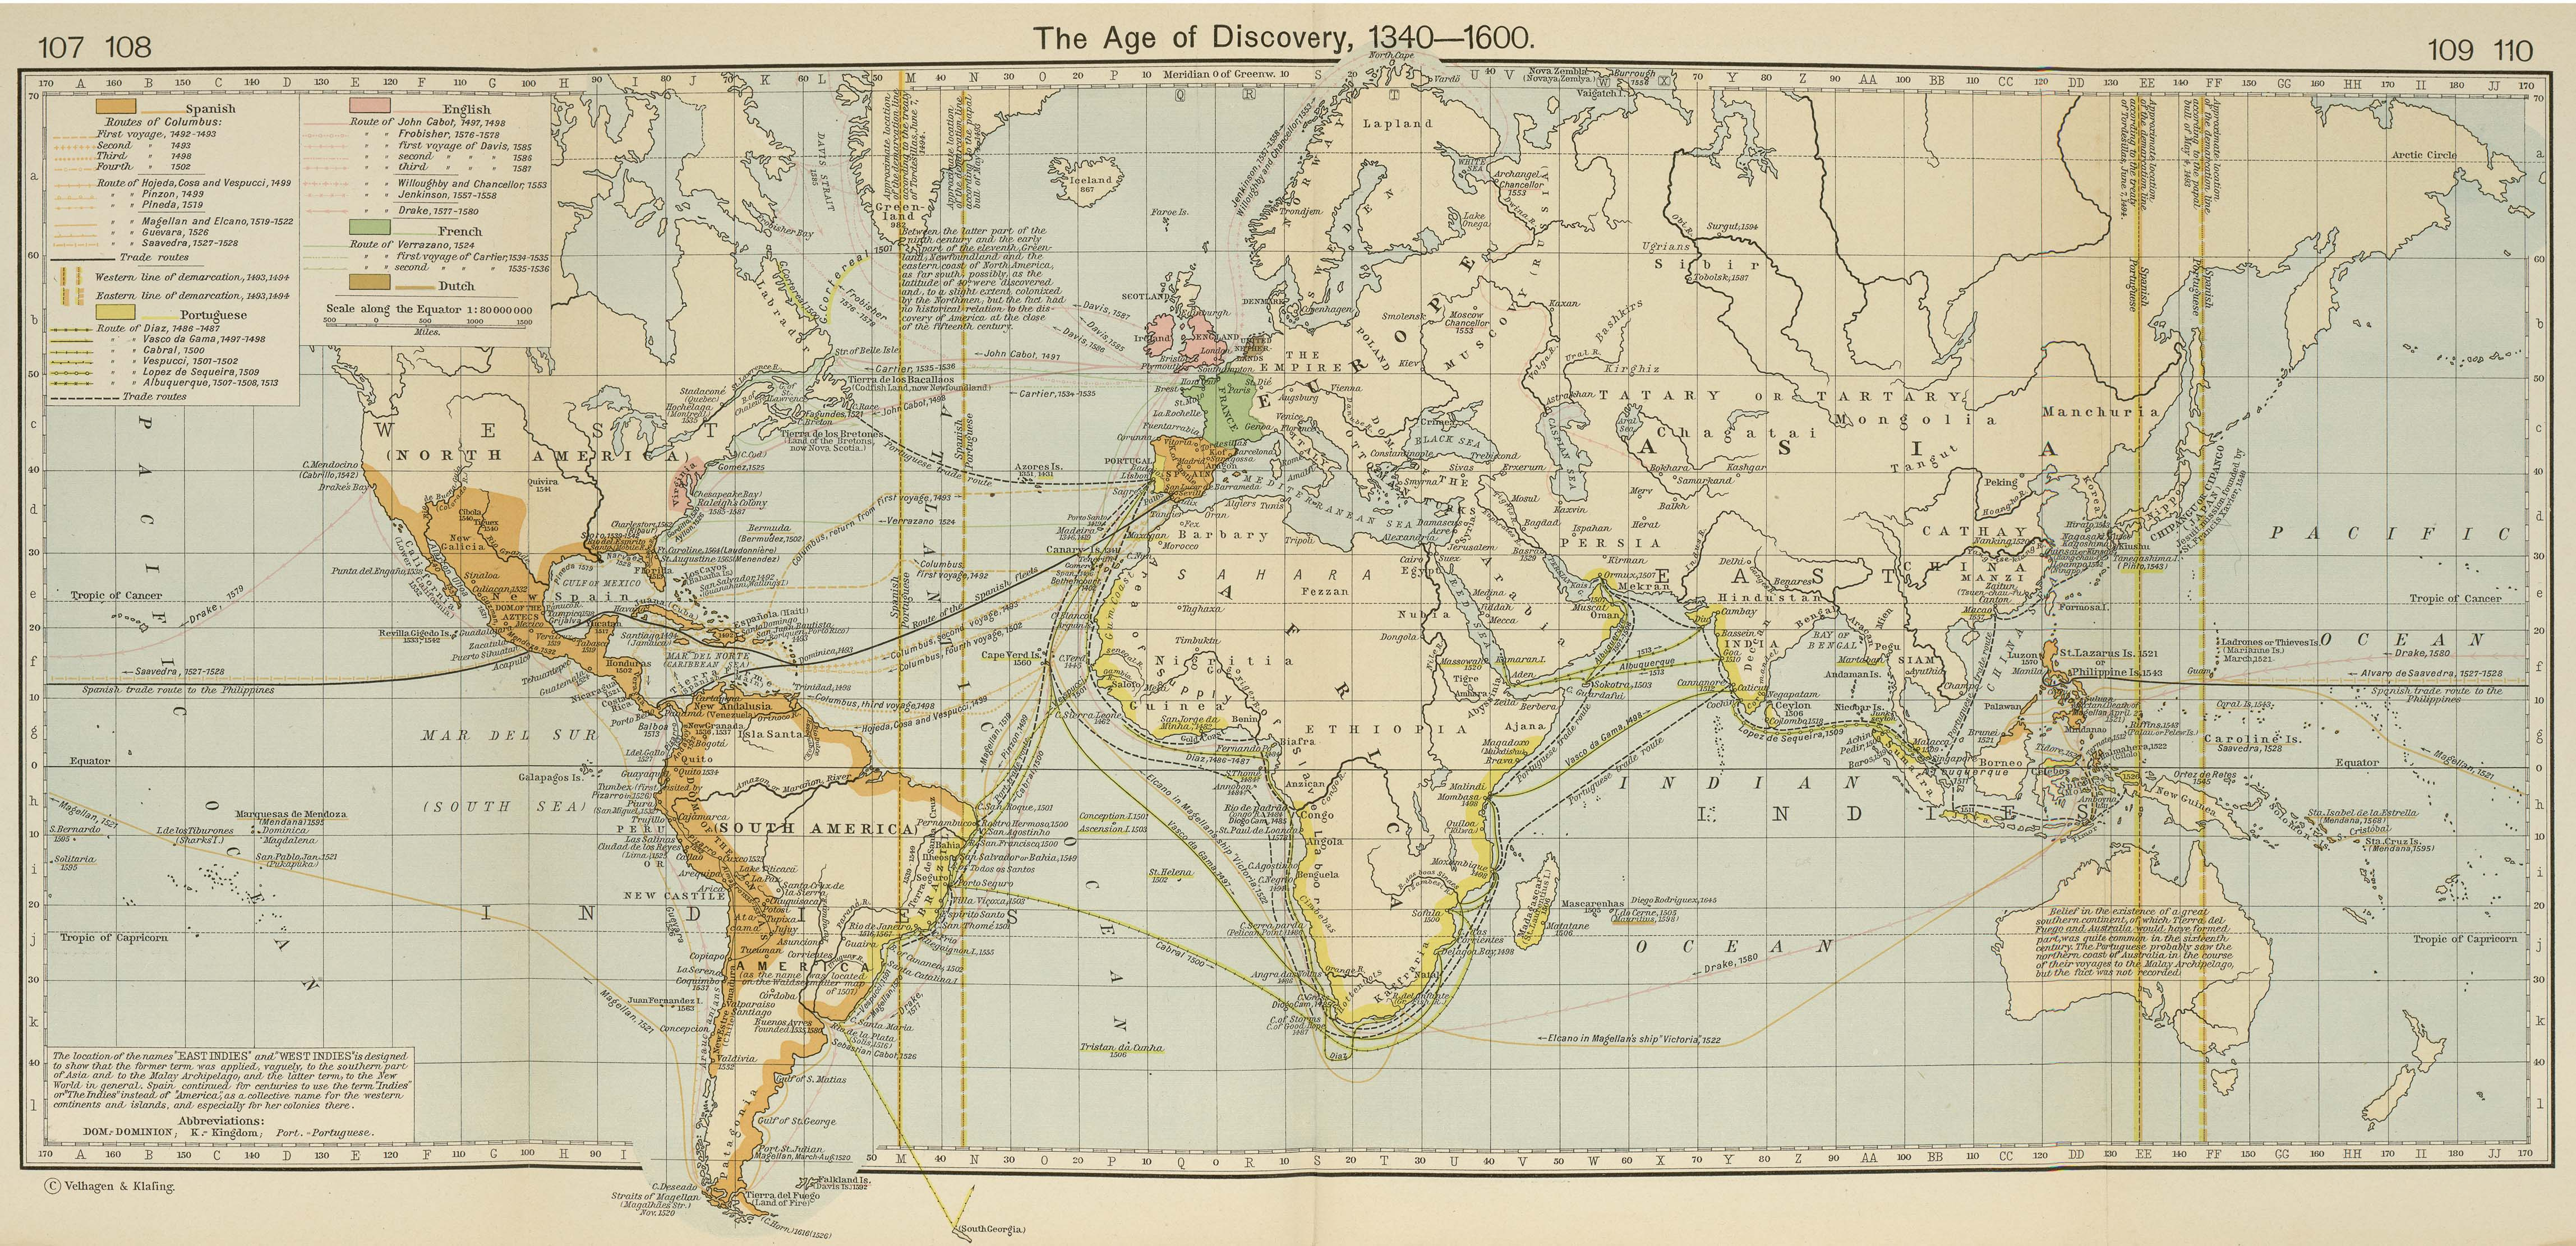 World historical maps perry castaeda map collection ut library the age of discovery 1340 1600 gumiabroncs Images